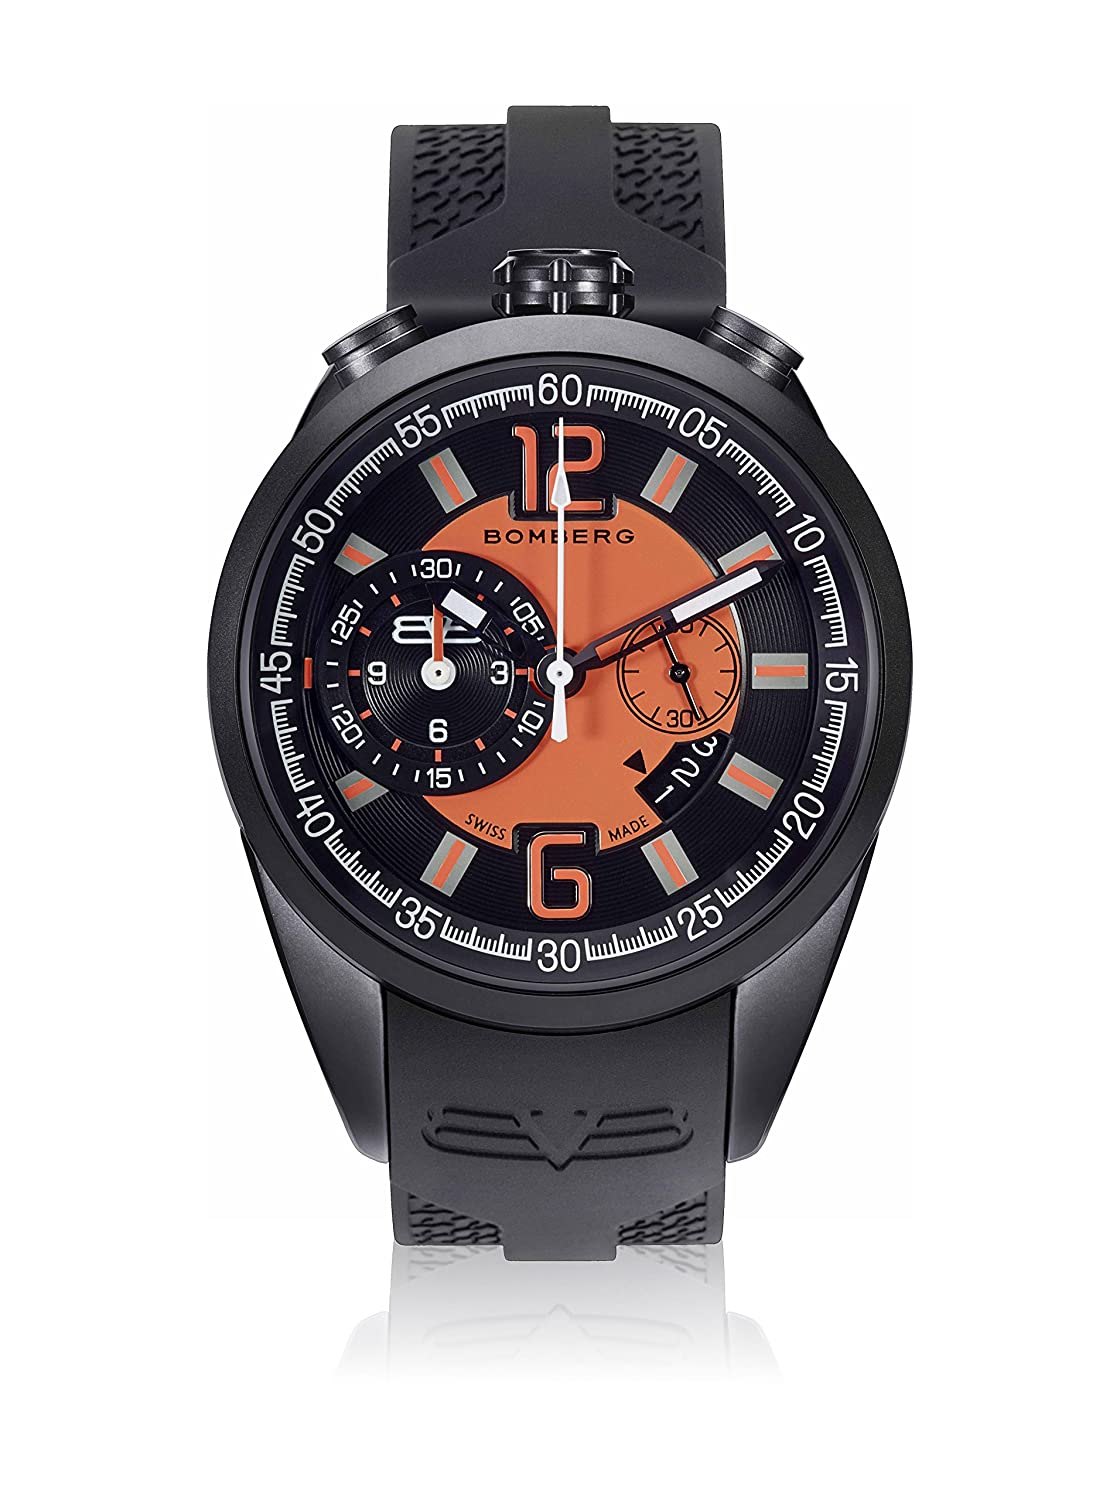 Bomberg NS44CHPBA.0086.2 1968 collection Uhren - Swiss Made - 44 mm